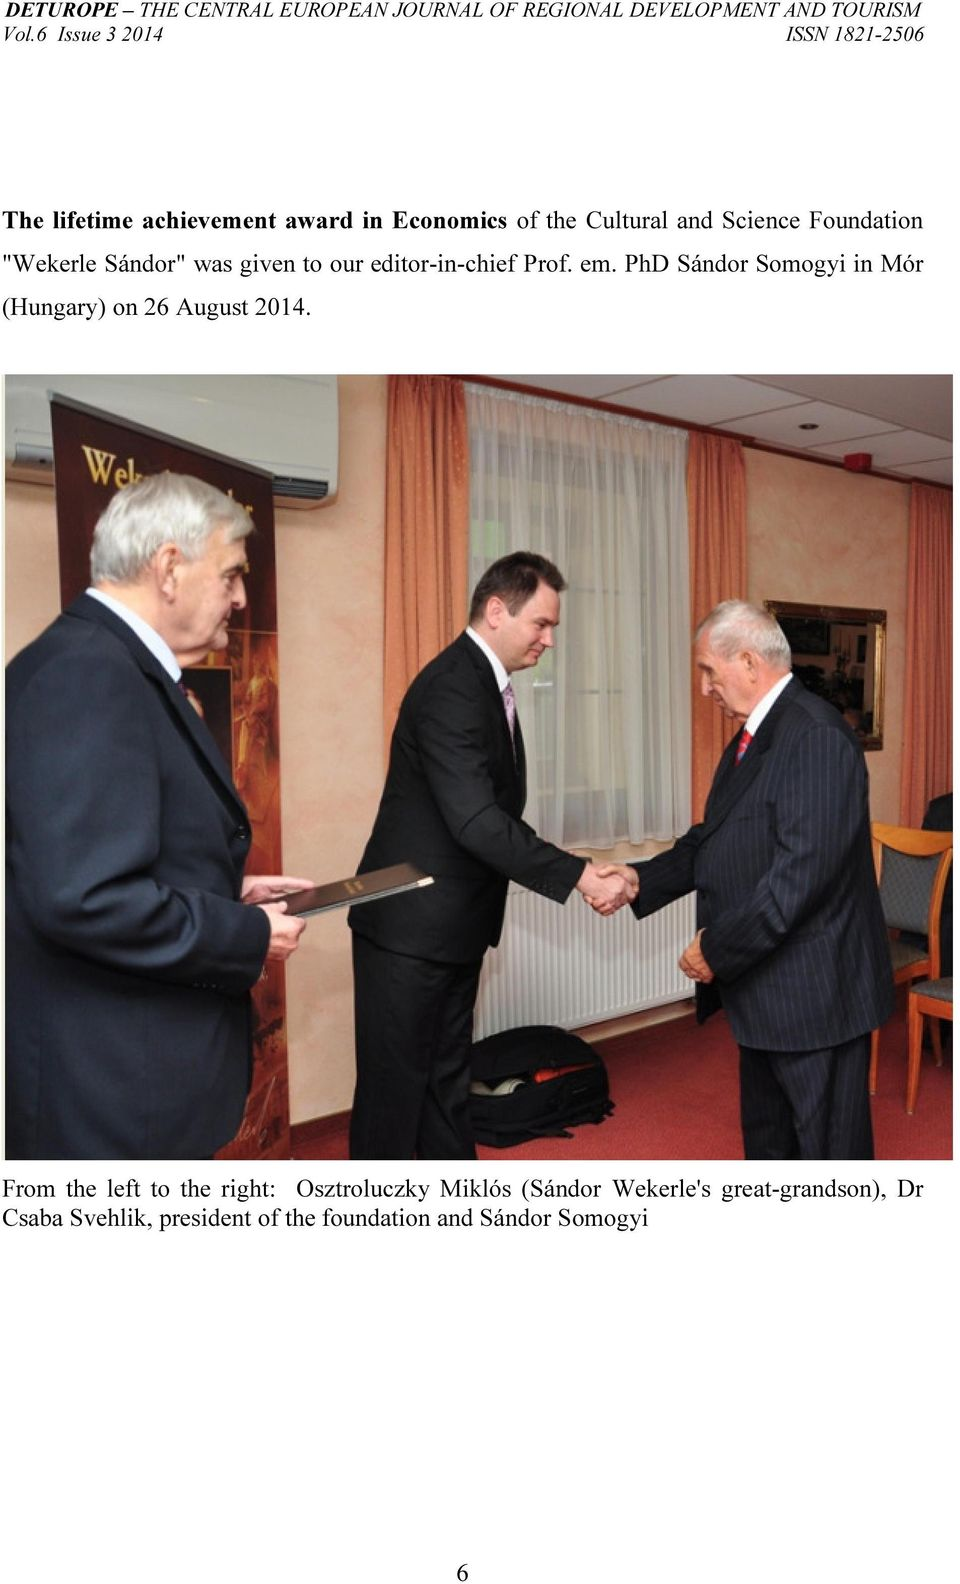 """Wekerle Sándor"" was given to our editor-in-chief Prof. em. PhD Sándor Somogyi in Mór (Hungary) on 26 August 2014."